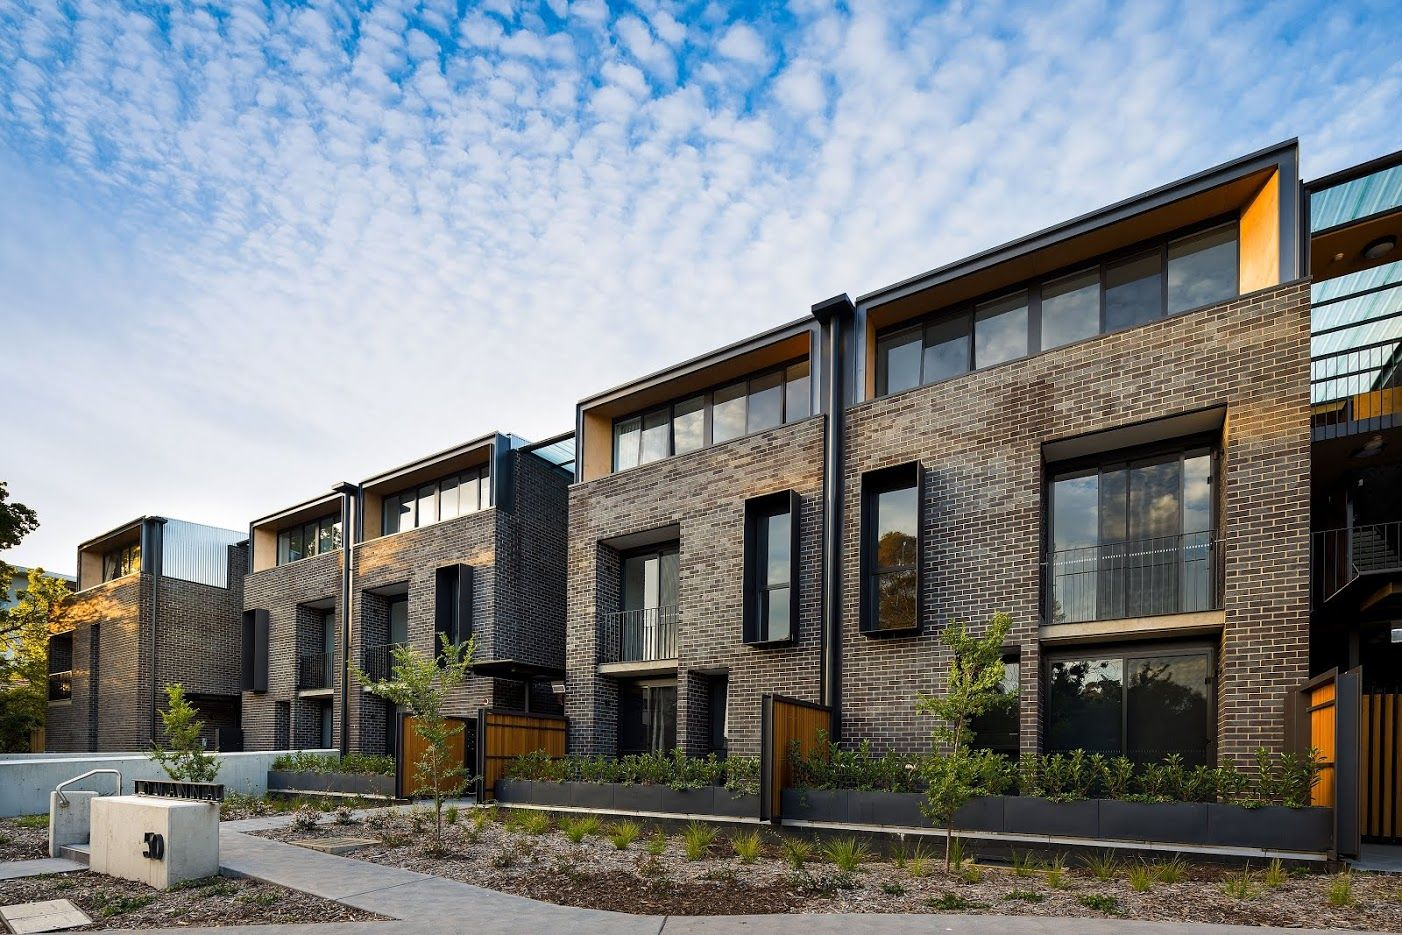 Lowanna by marcus graham architect sydney ancher award for Residential architecture awards